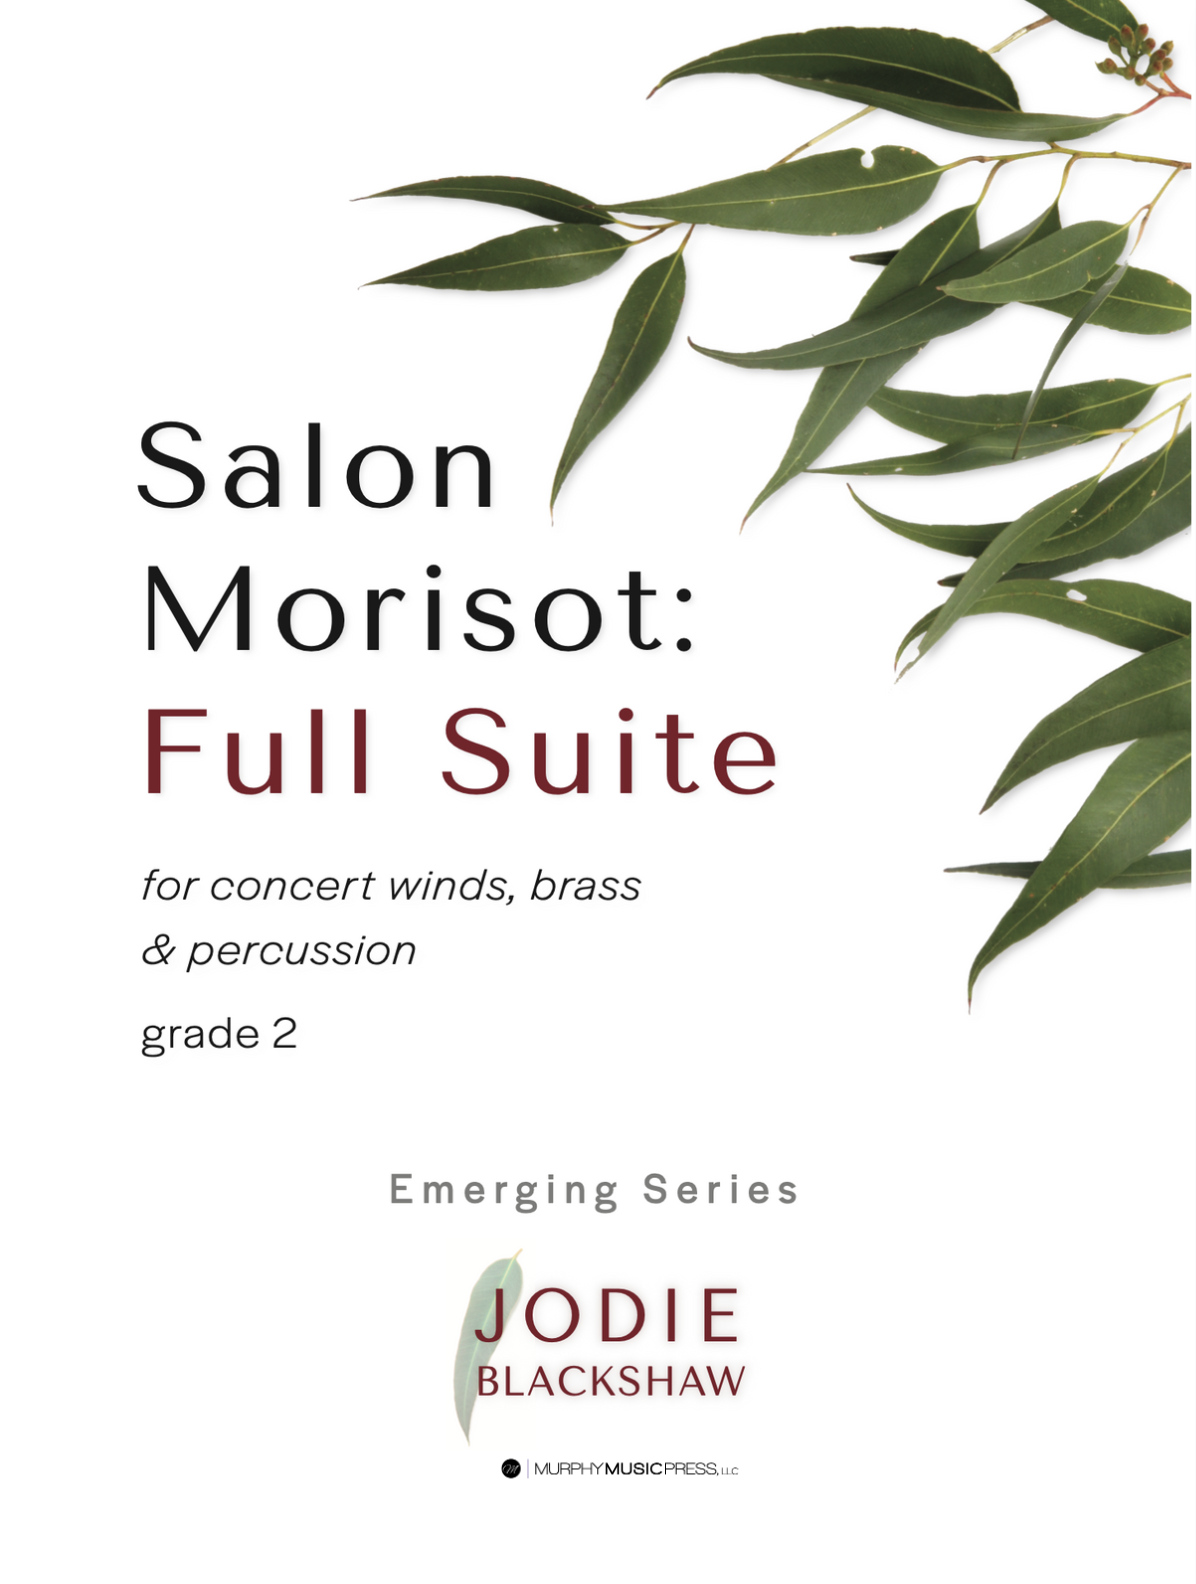 Salon Morisot by Jodie Blackshaw